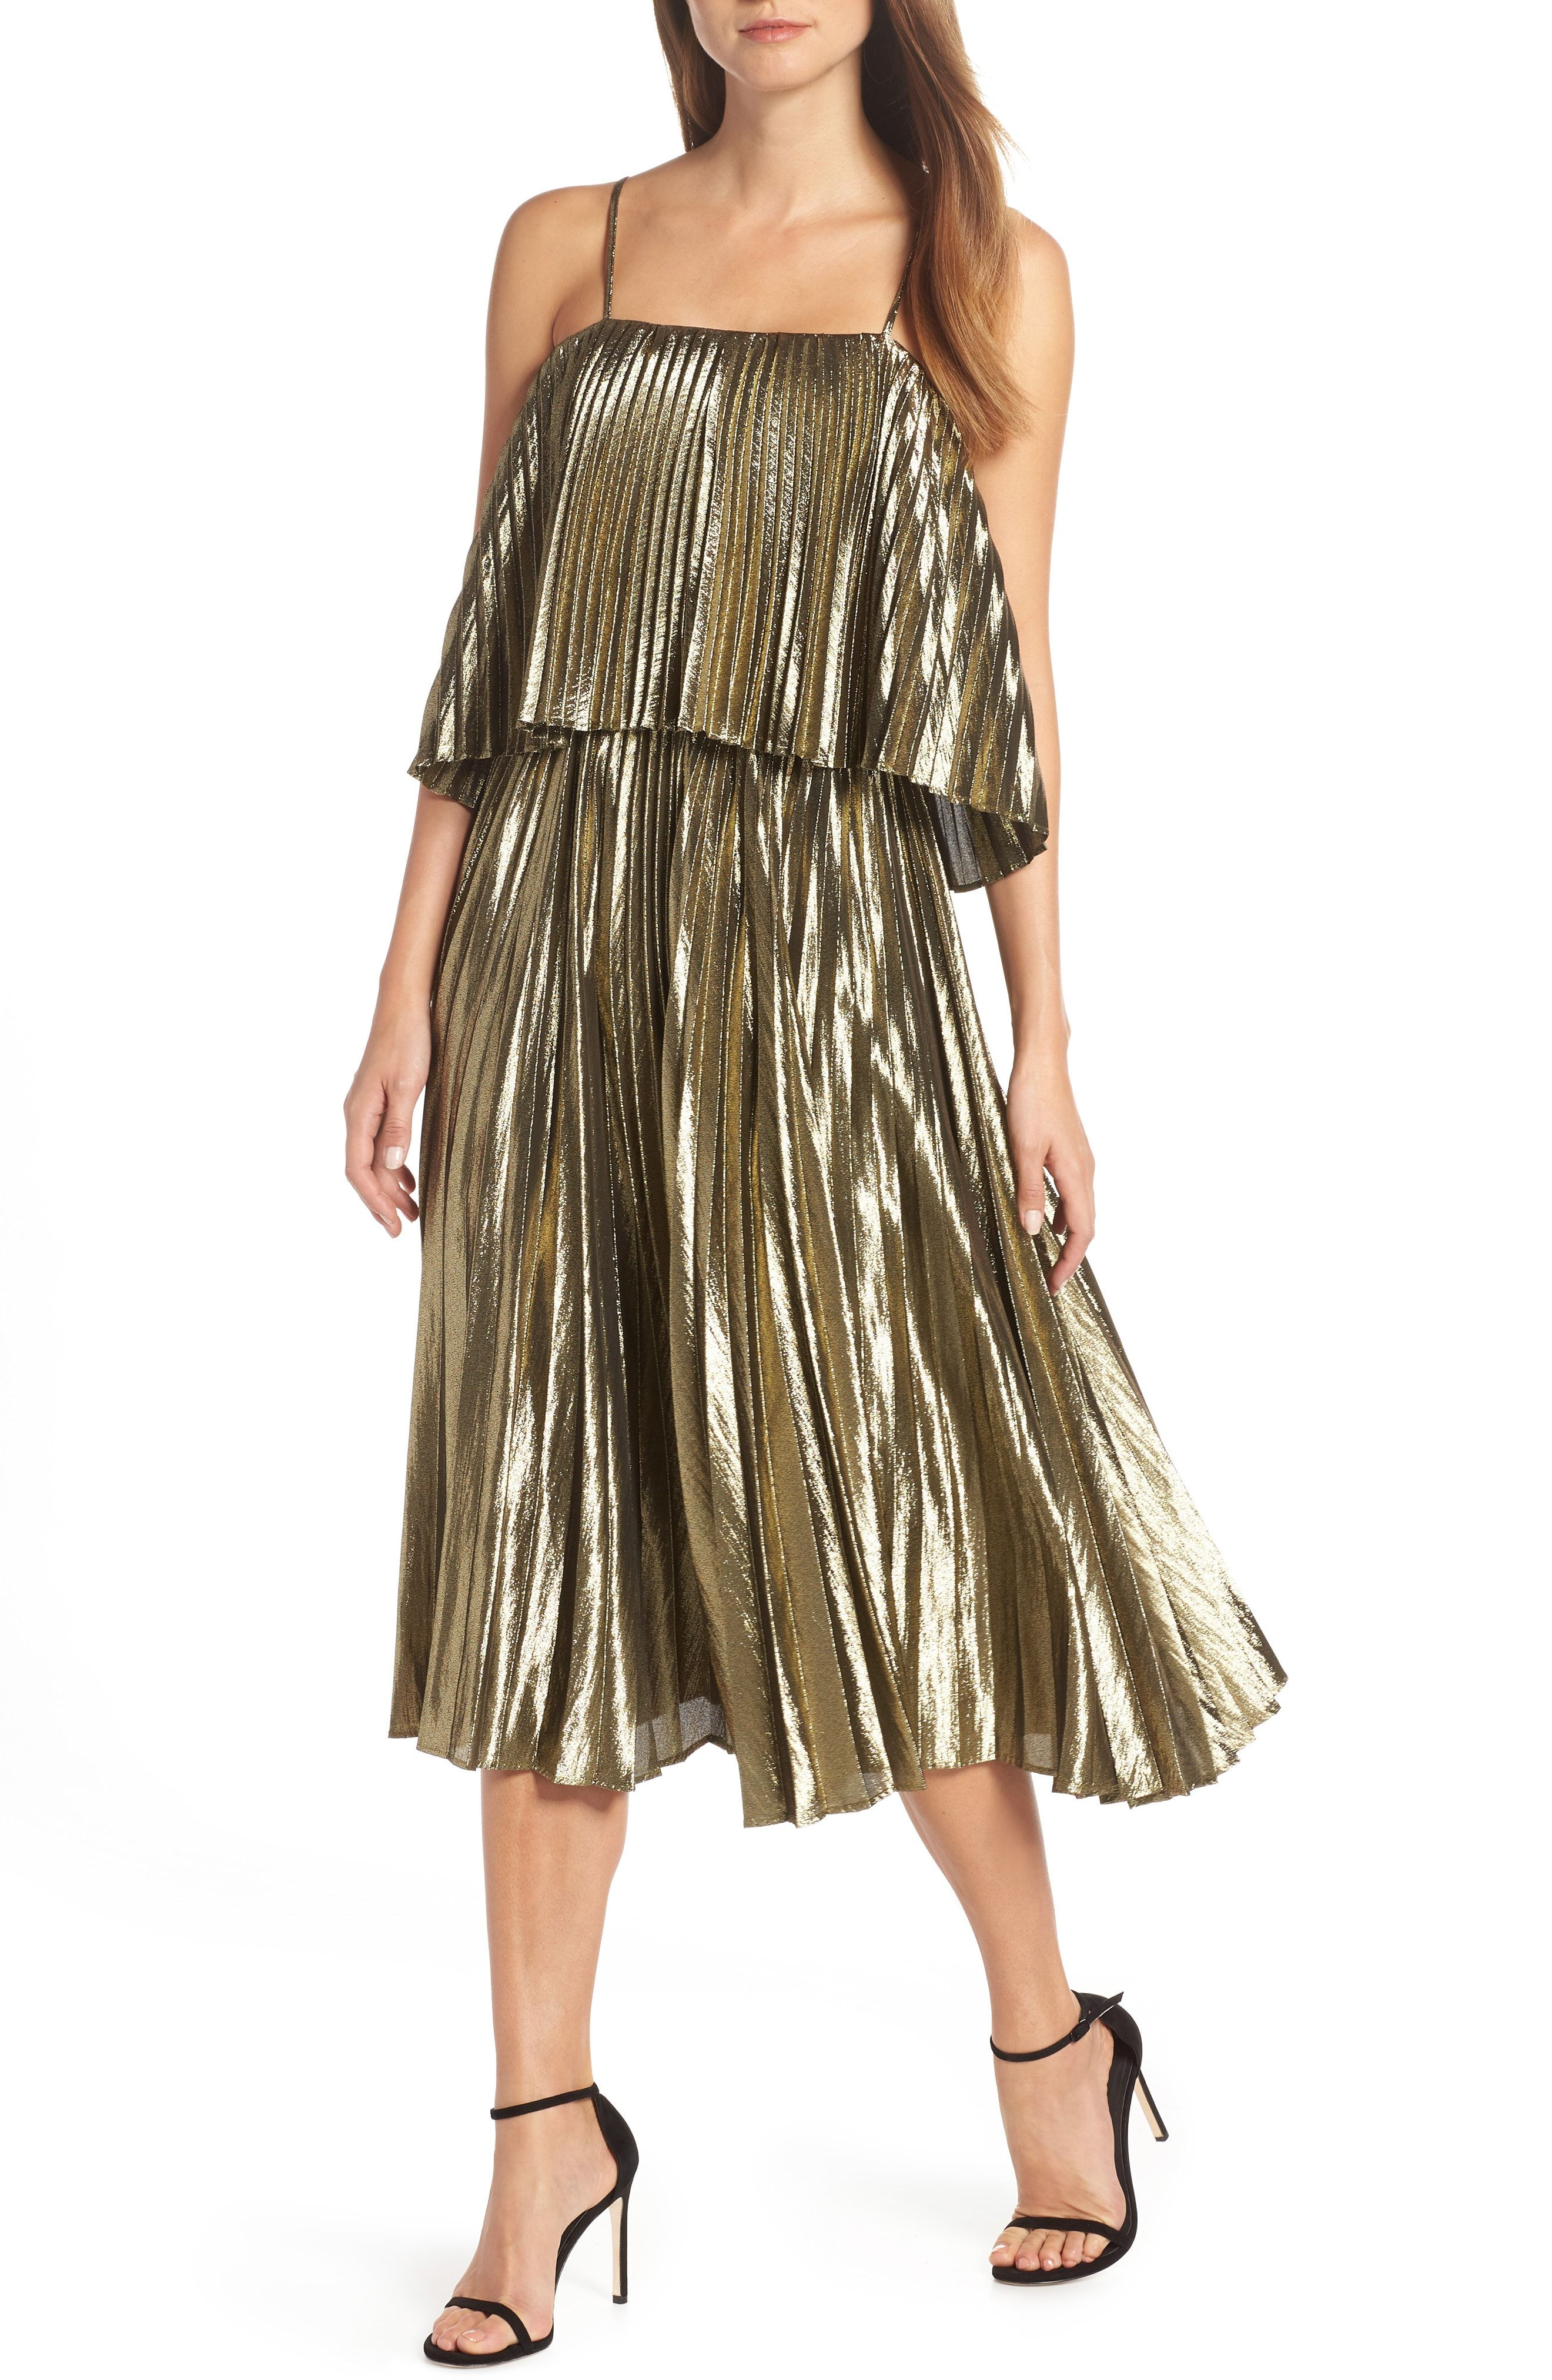 67e8a6182d J.Crew Collection Gold Lamé Pleated Midi Dress   holidays I outfit ...